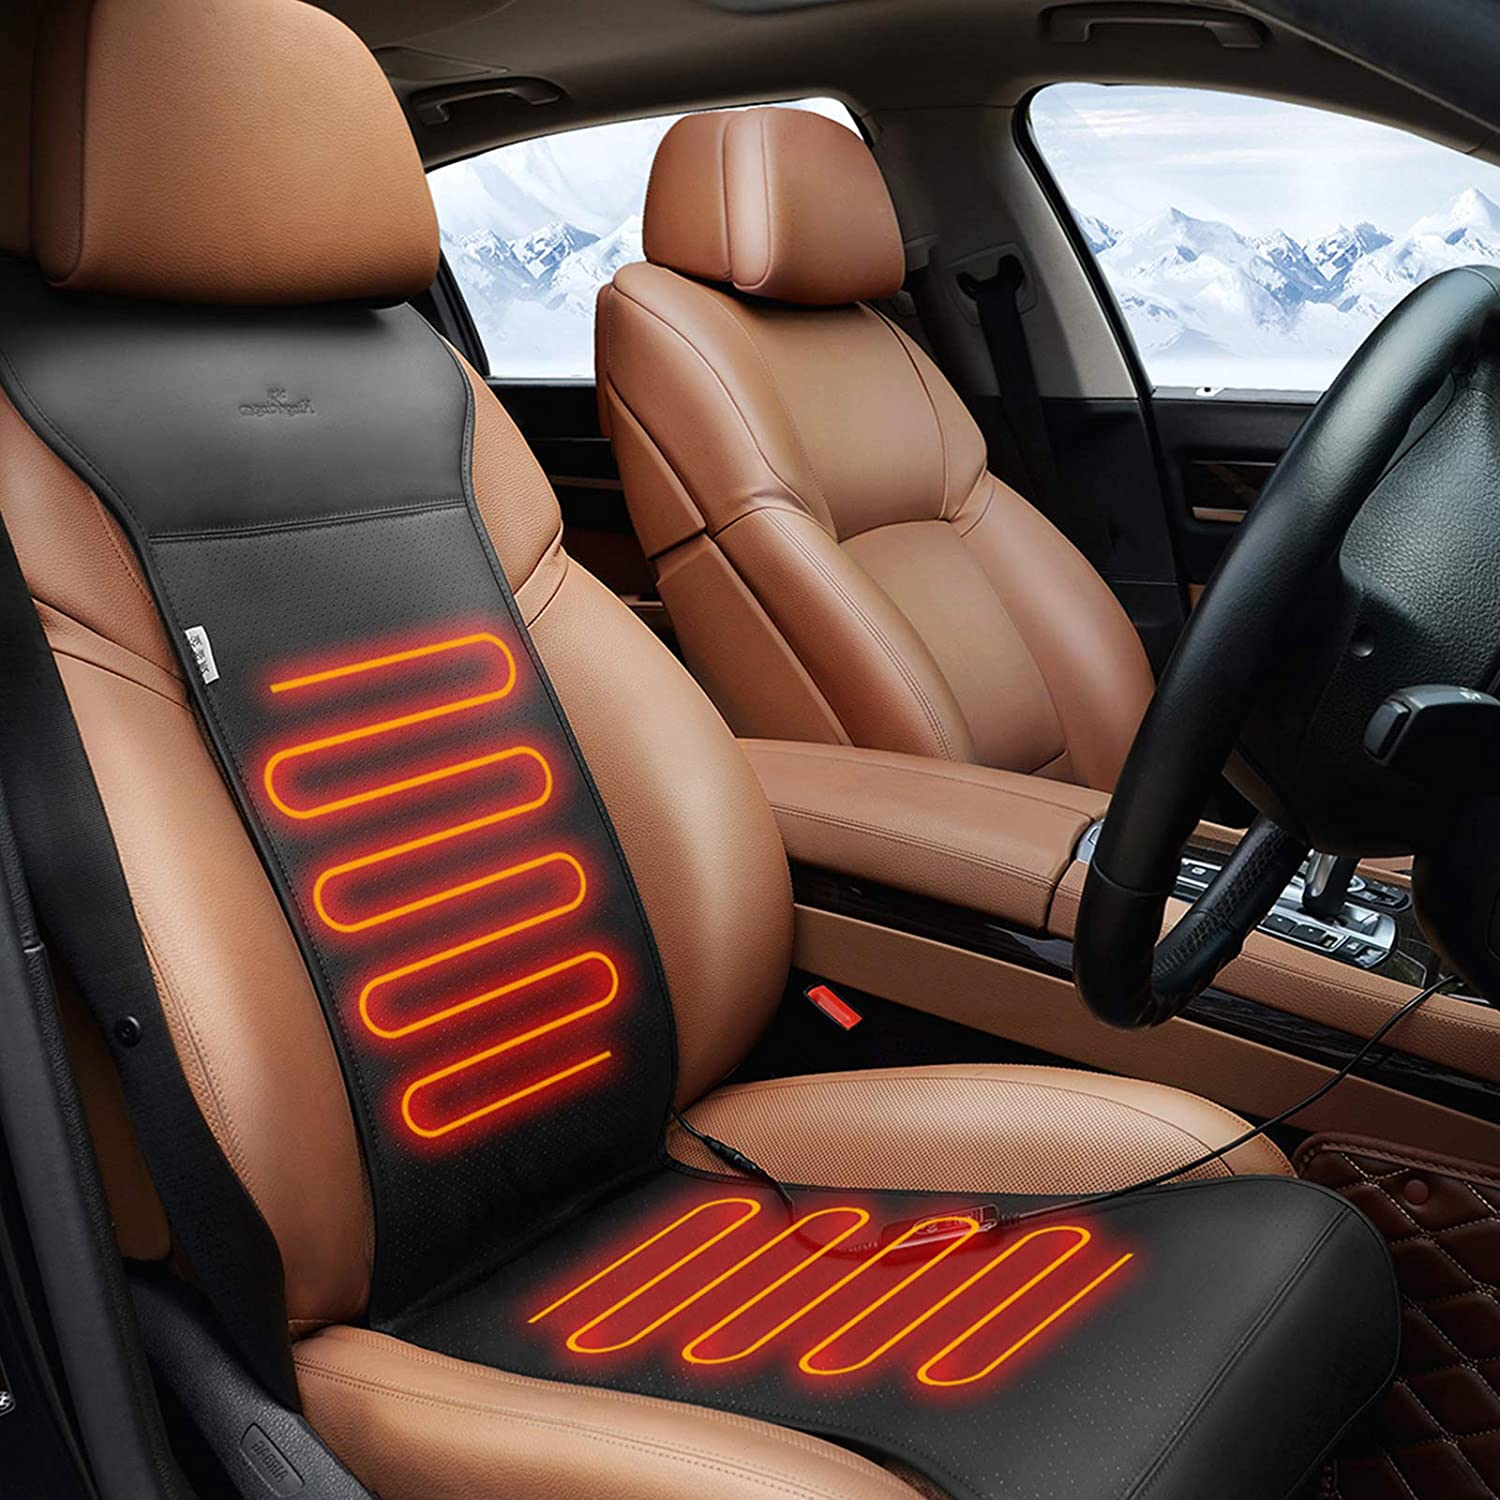 Kingleting Warmer Seat Cushion with Intelligent Temperature Controller